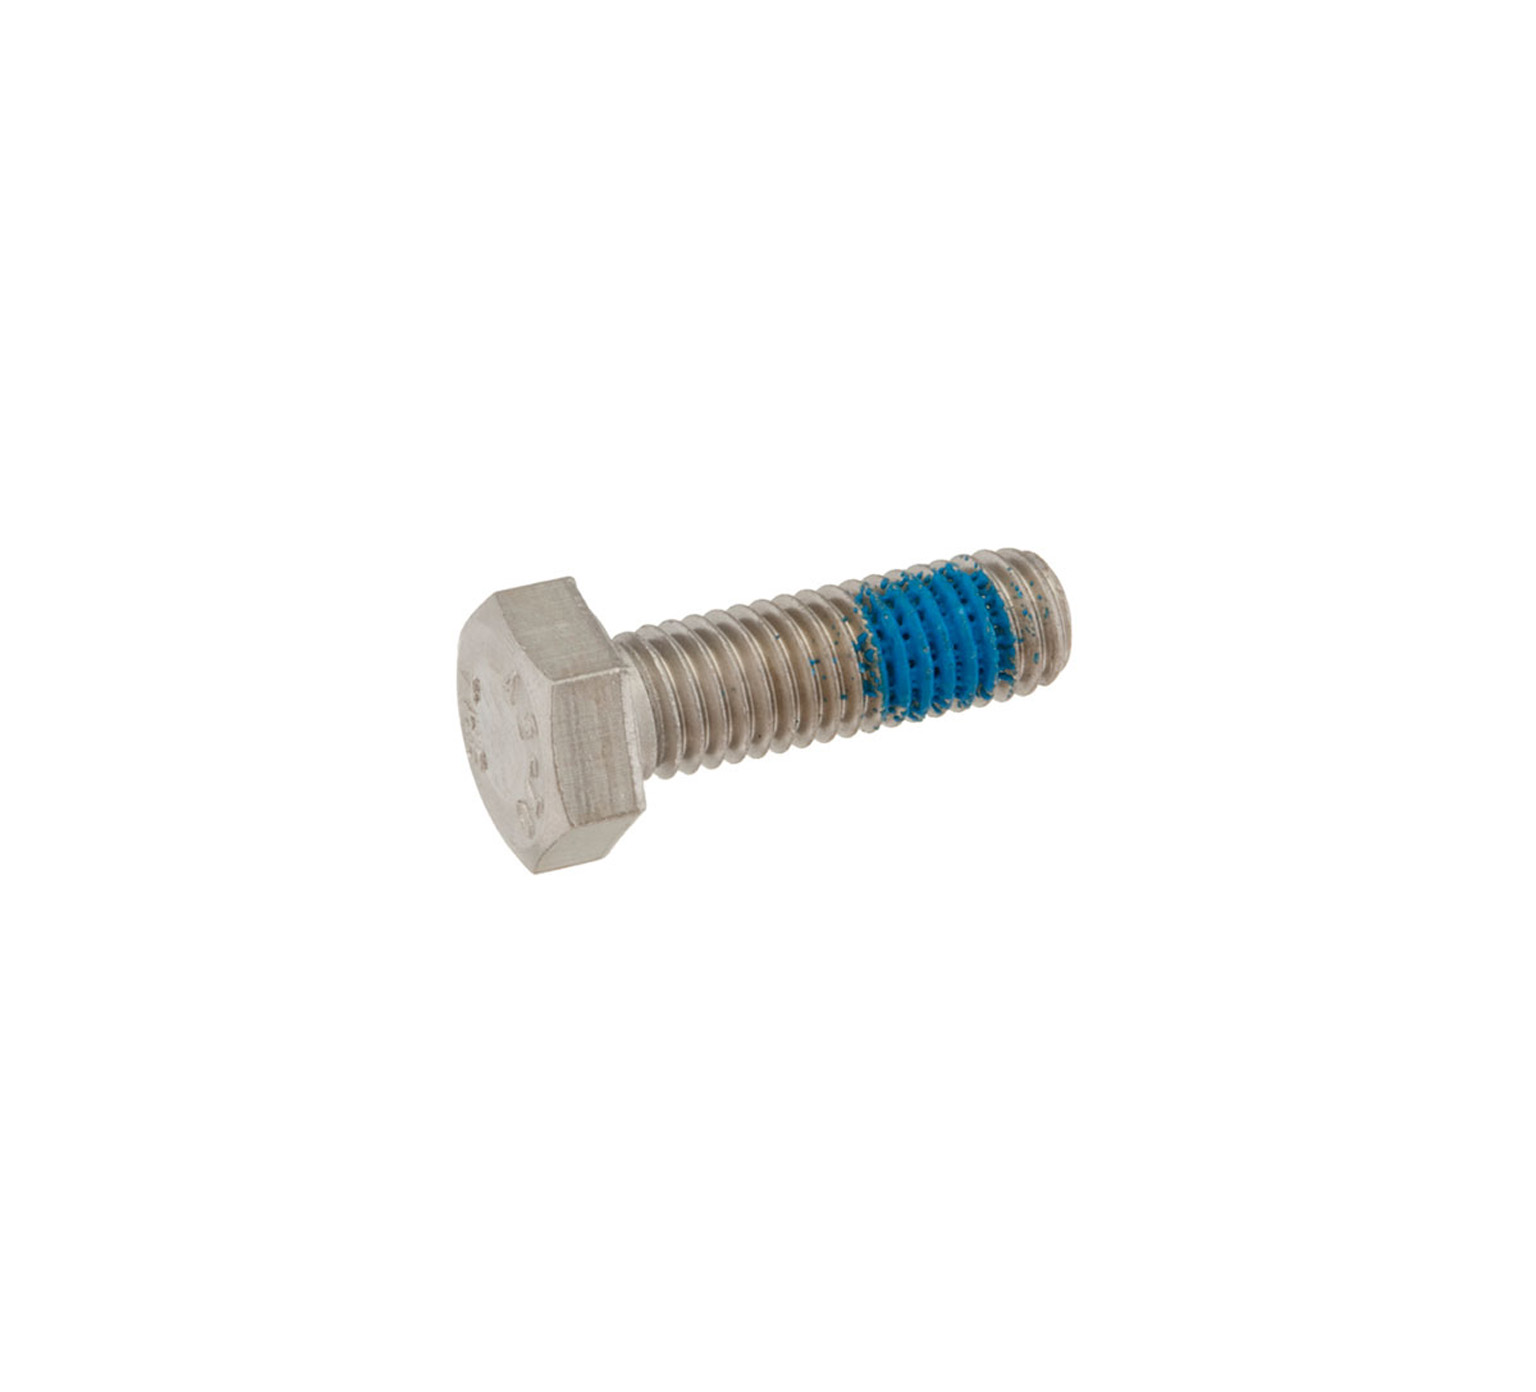 12333 Stainless Steel Hex Screw - M8 Thread x 1 in alt 1